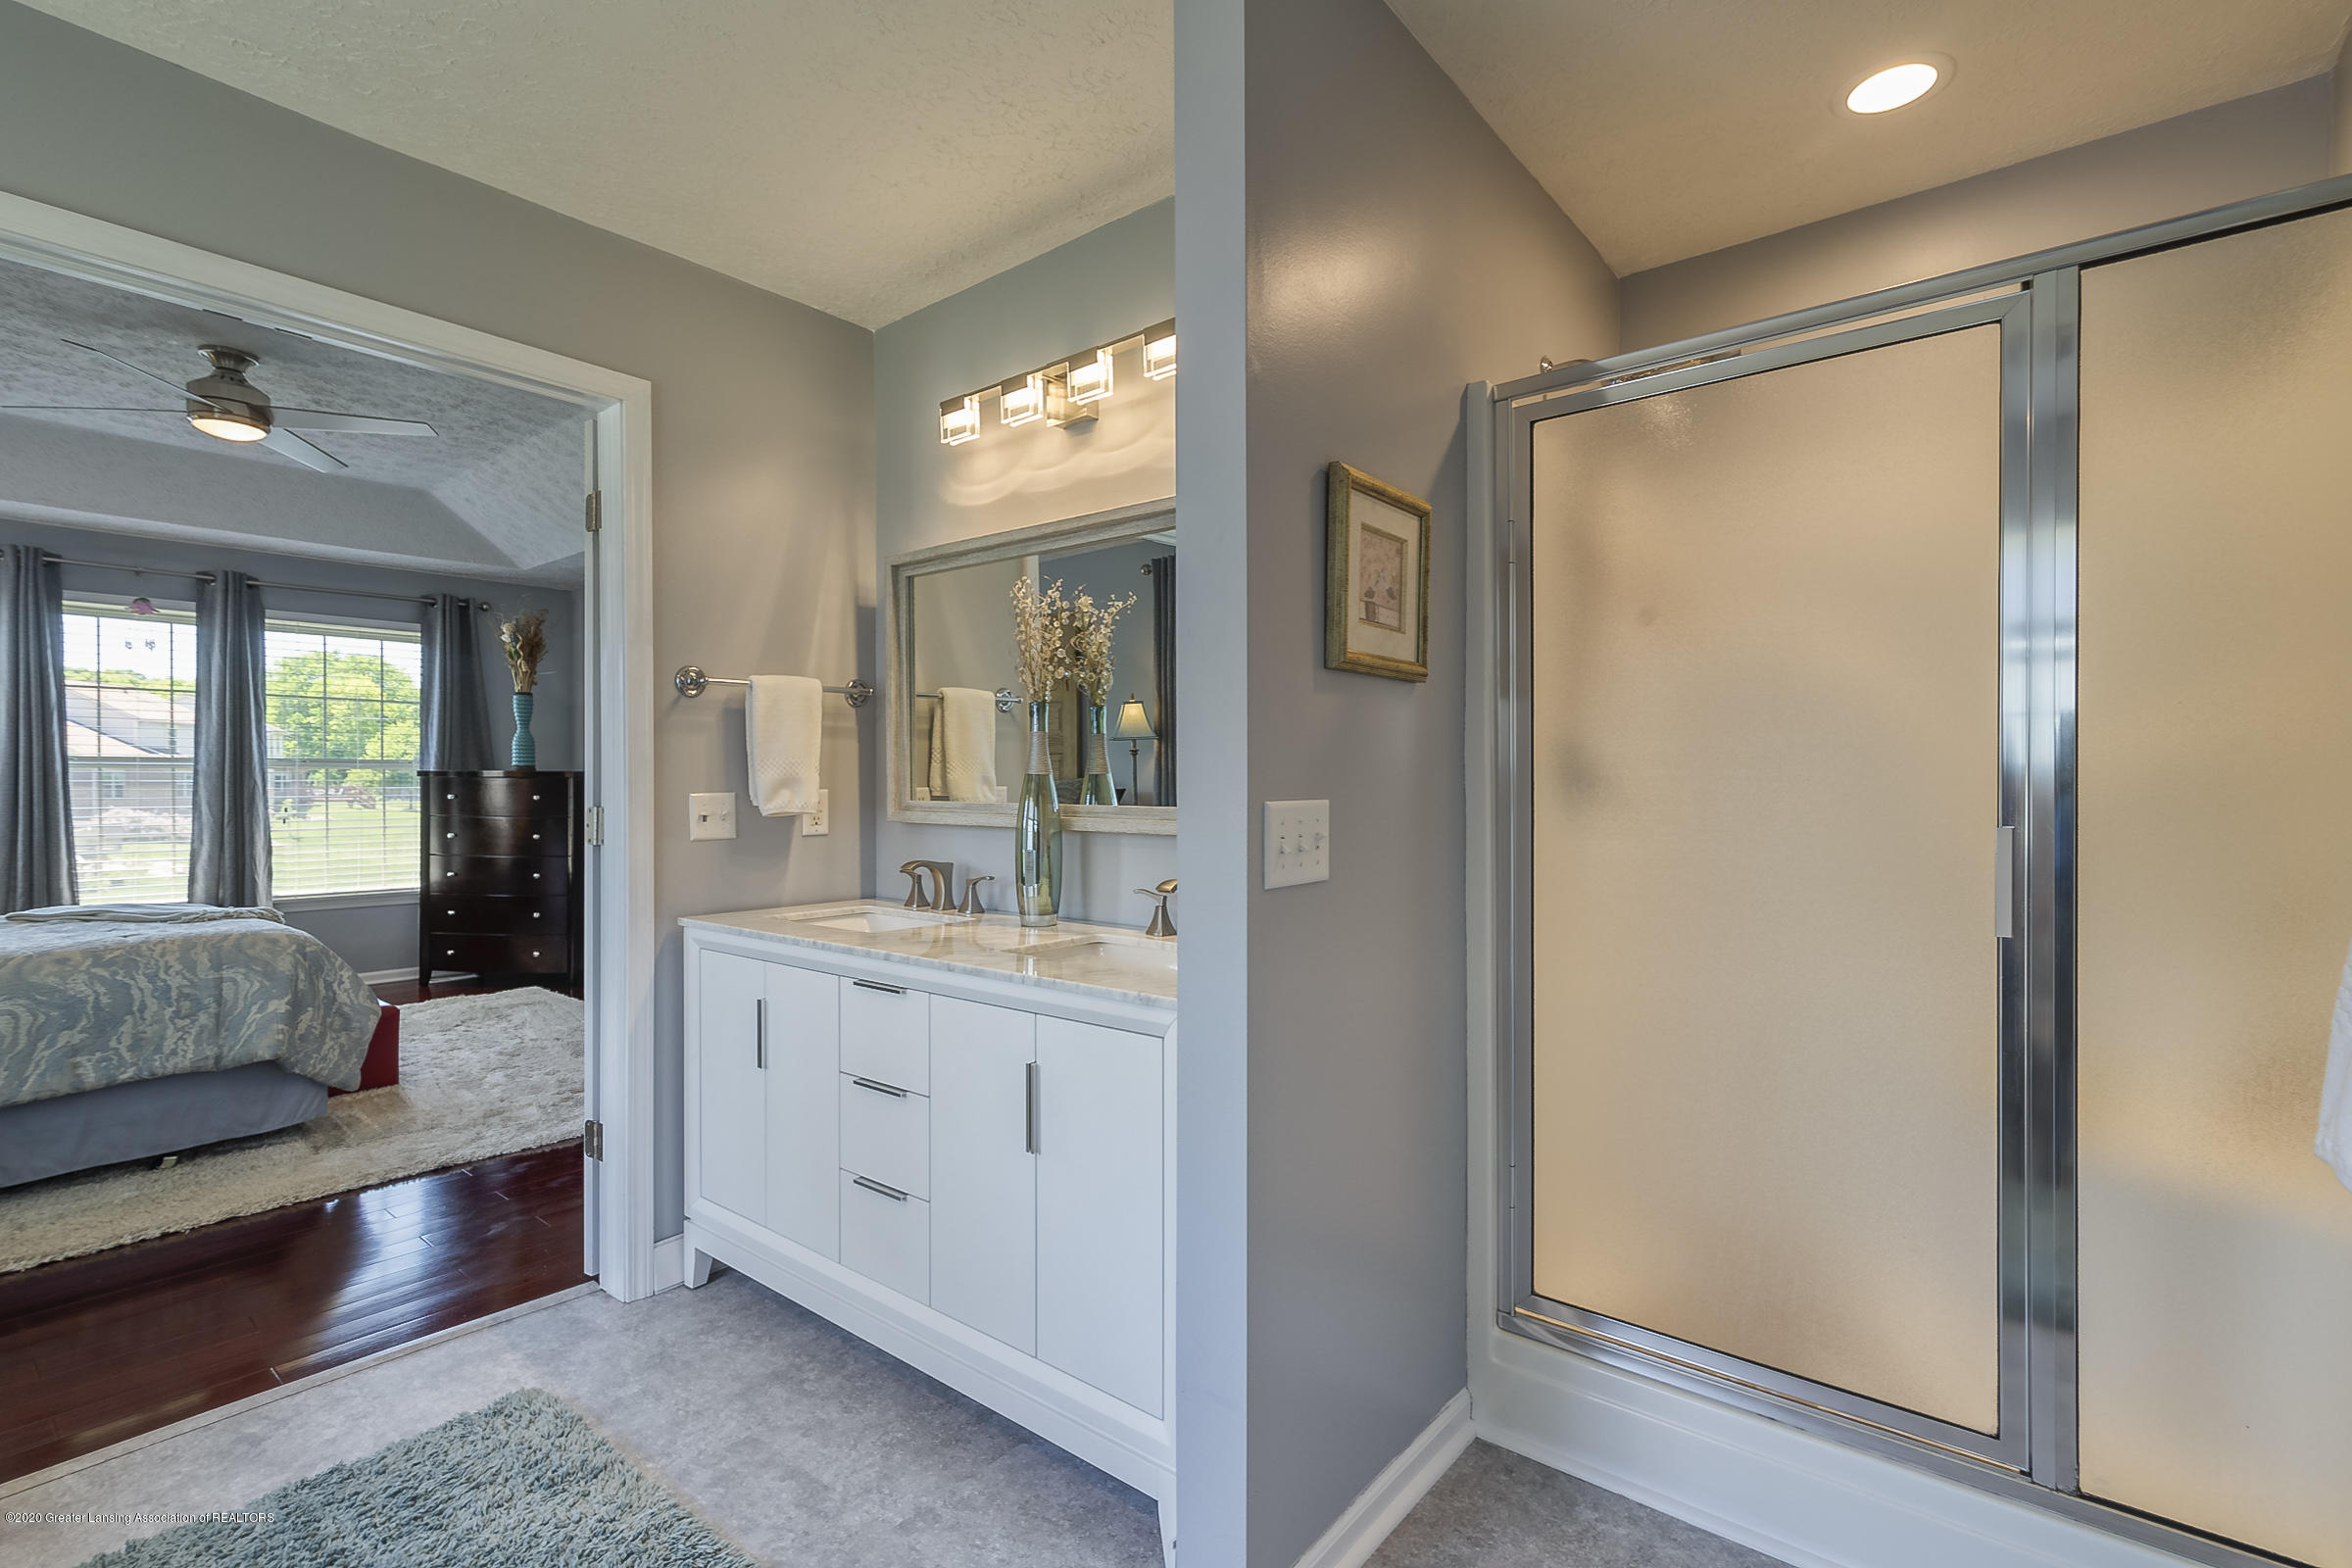 4092 Pheasant Run - MASTER BATHROOM - 23